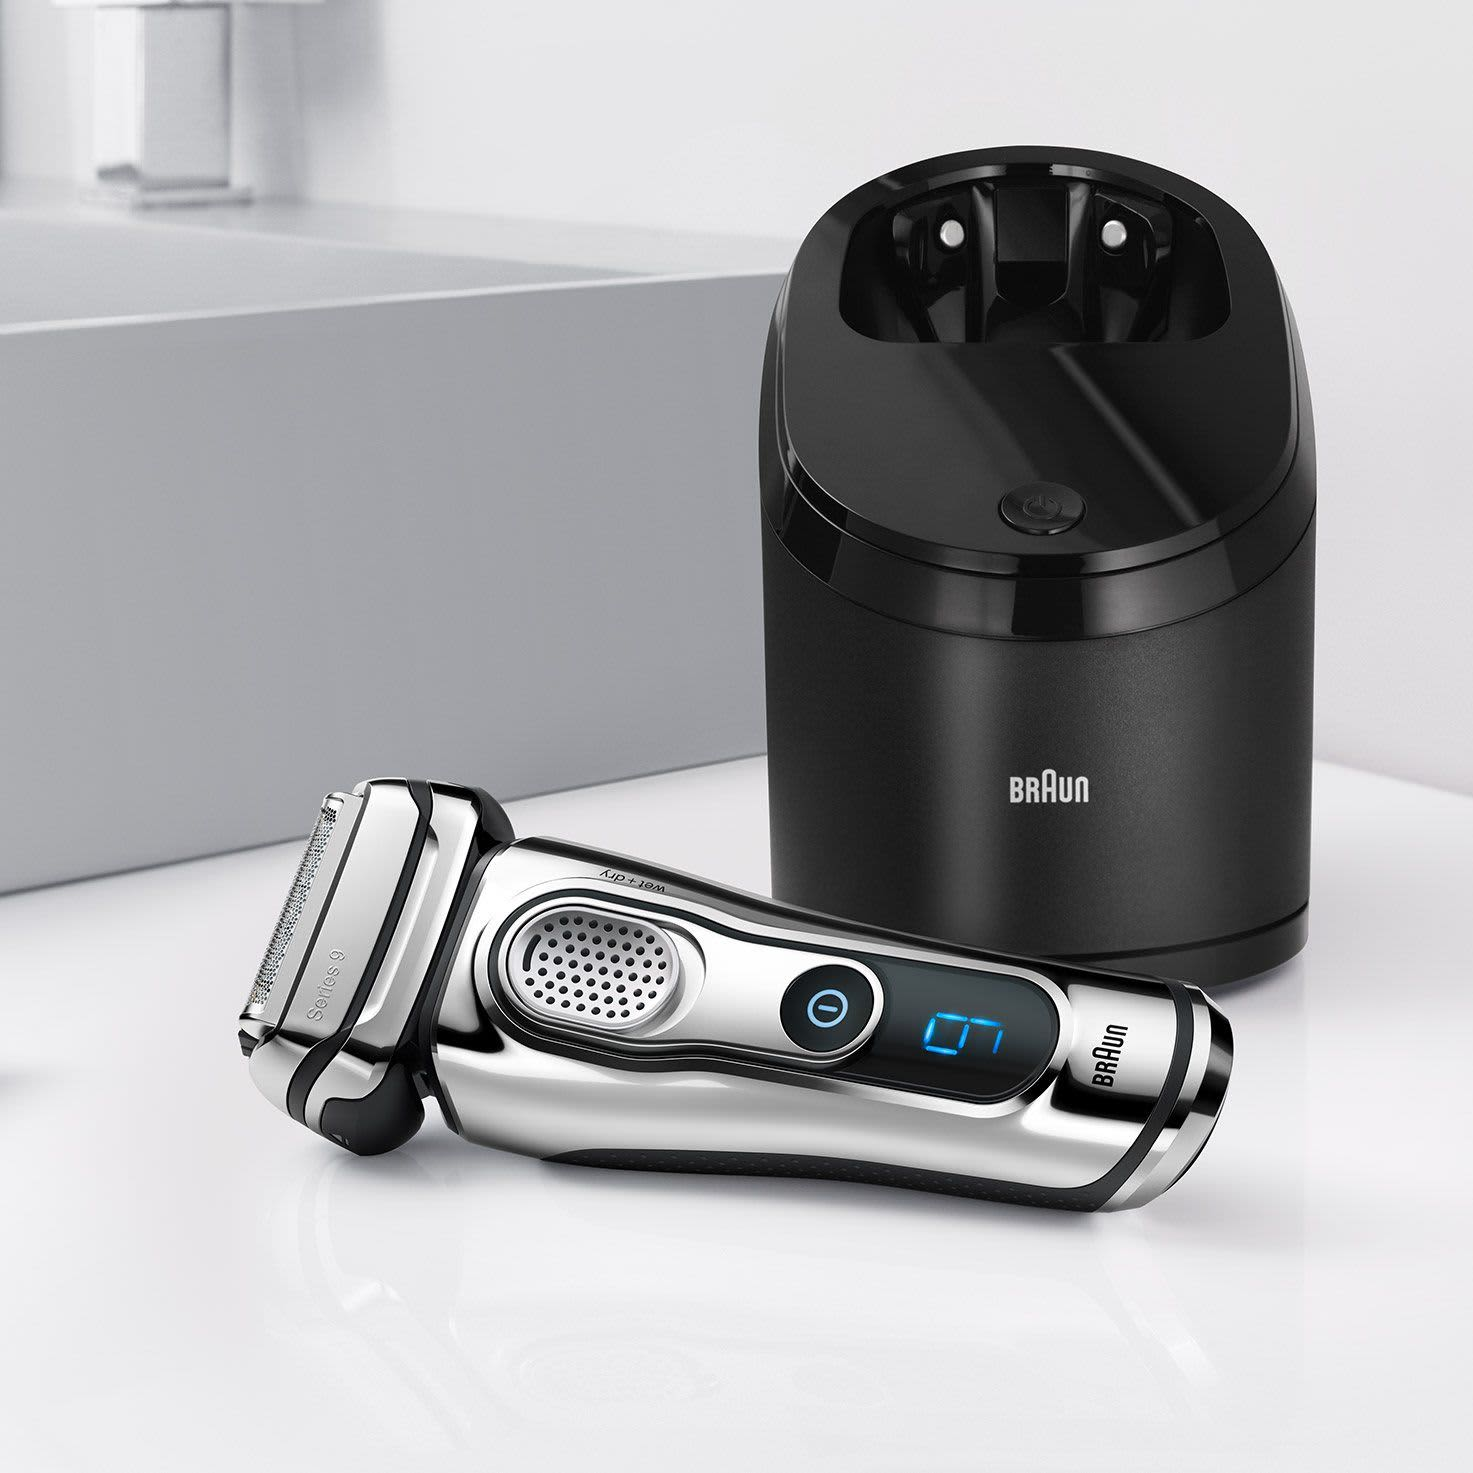 Braun Series 9 chrome electric shaver with Clean & Charge Station